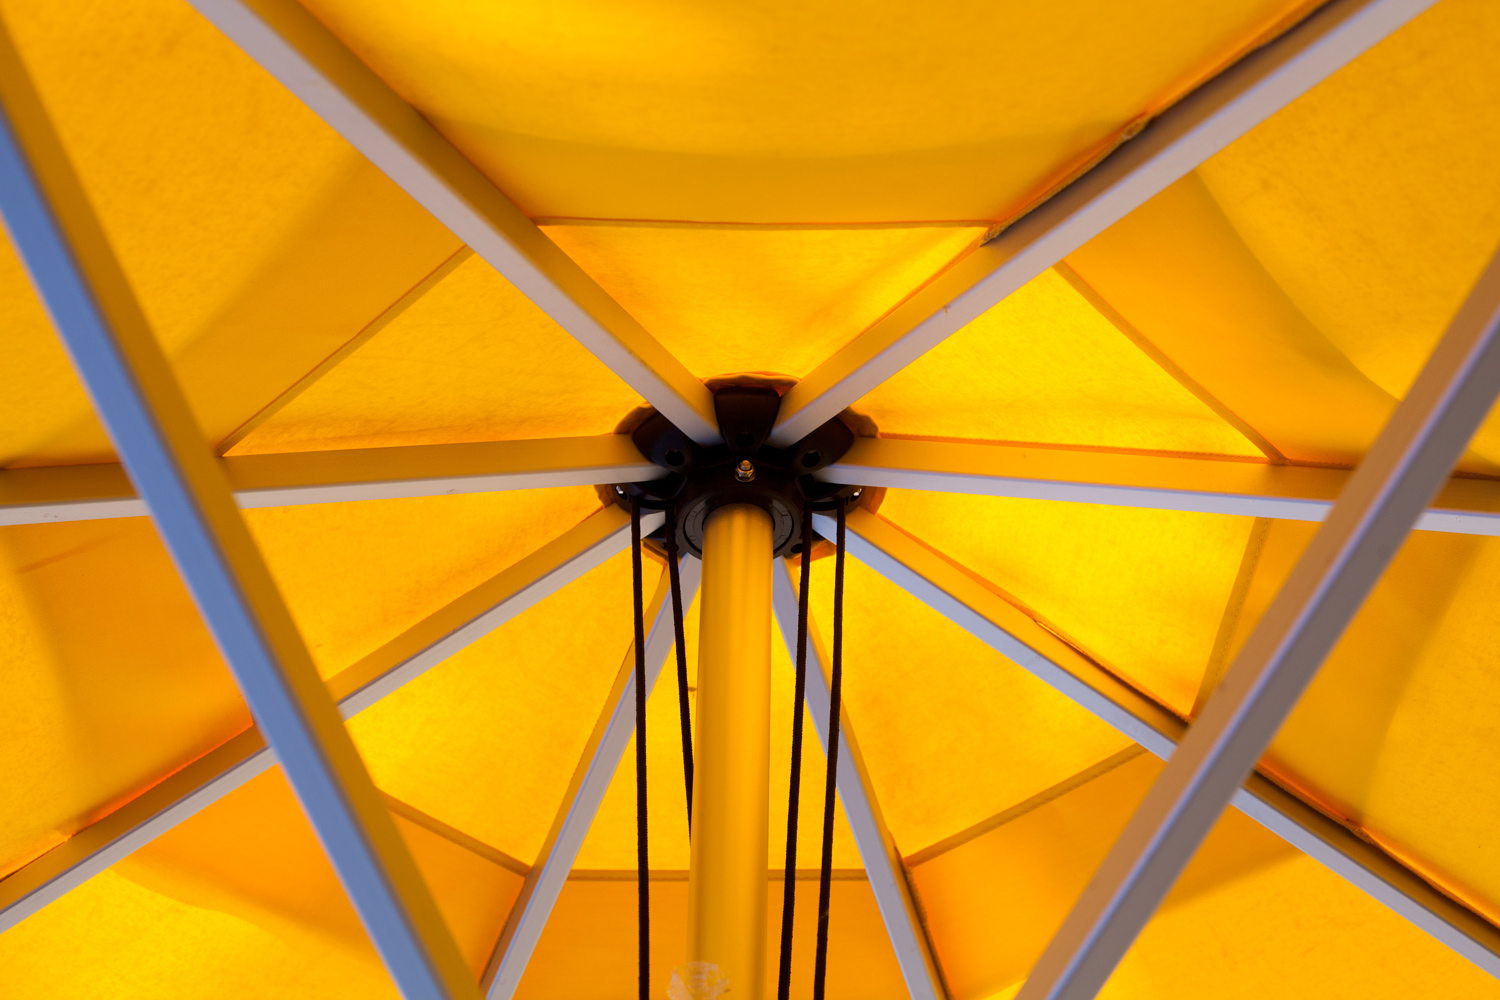 https://i1.wp.com/digital-photography-school.com/wp-content/uploads/2018/11/50-mm-lens-yellow-umbrella.jpg?resize=1500%2C1000&ssl=1